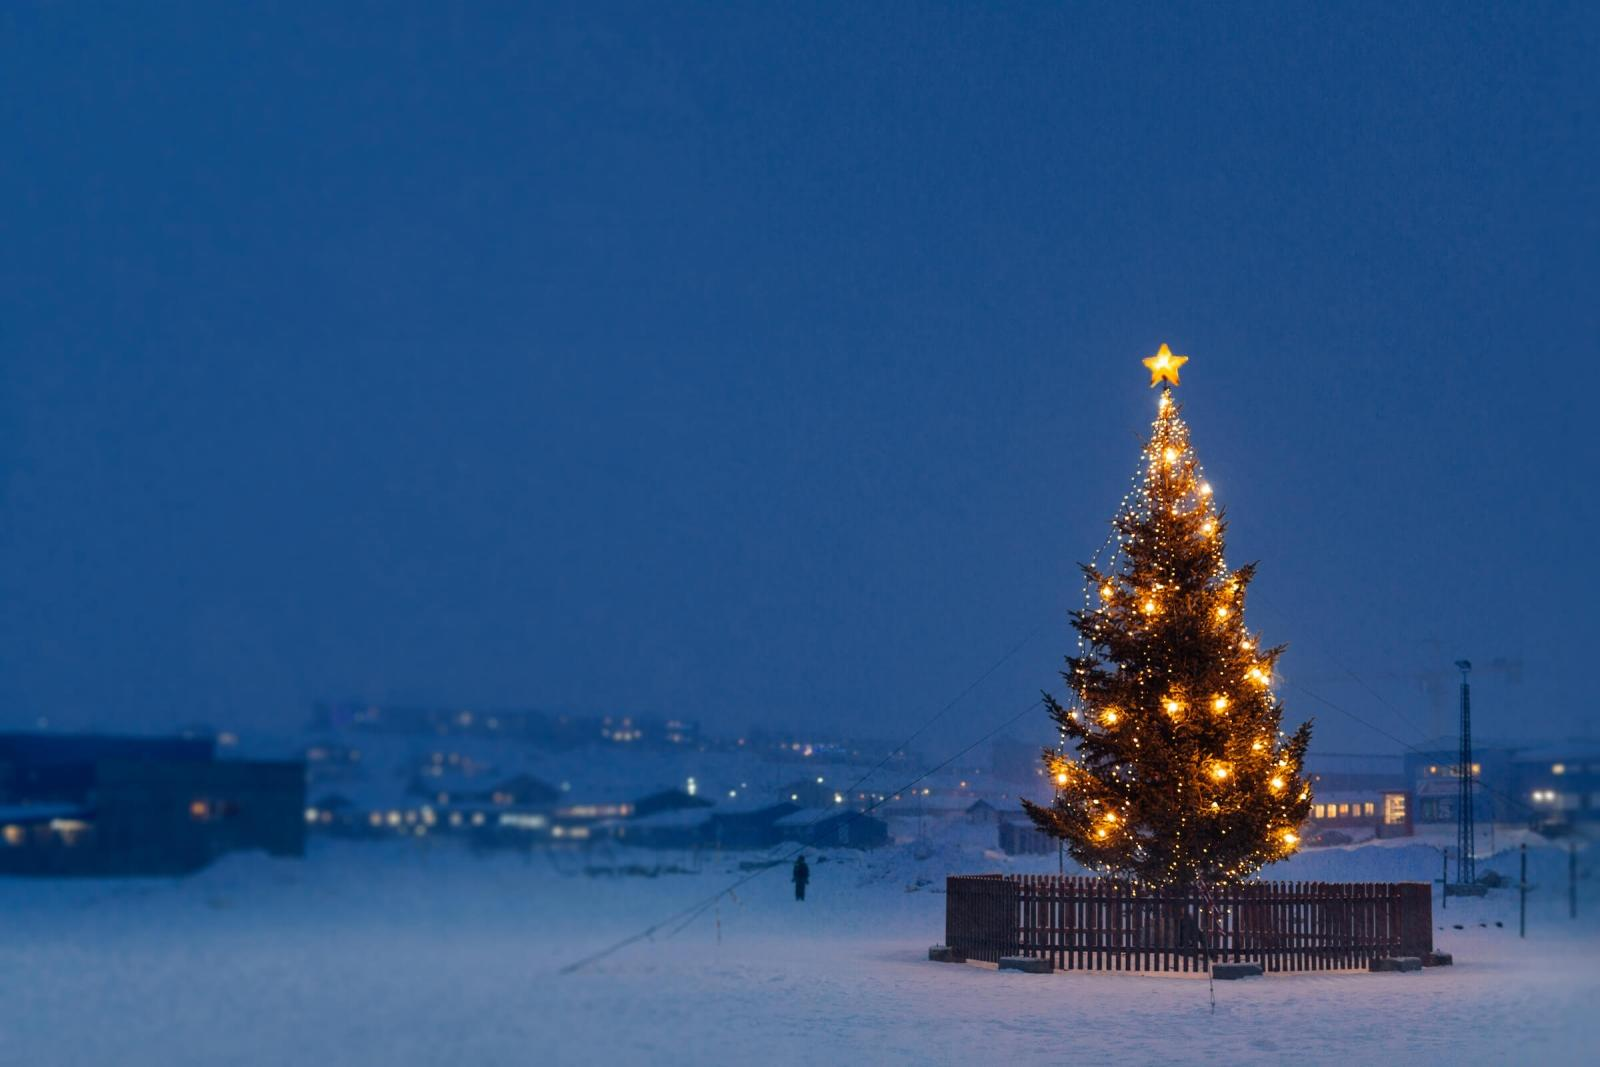 A christmas tree in Nuuk in Greenland on a snowy december afternoon. Photo by Rebecca Gustafsson